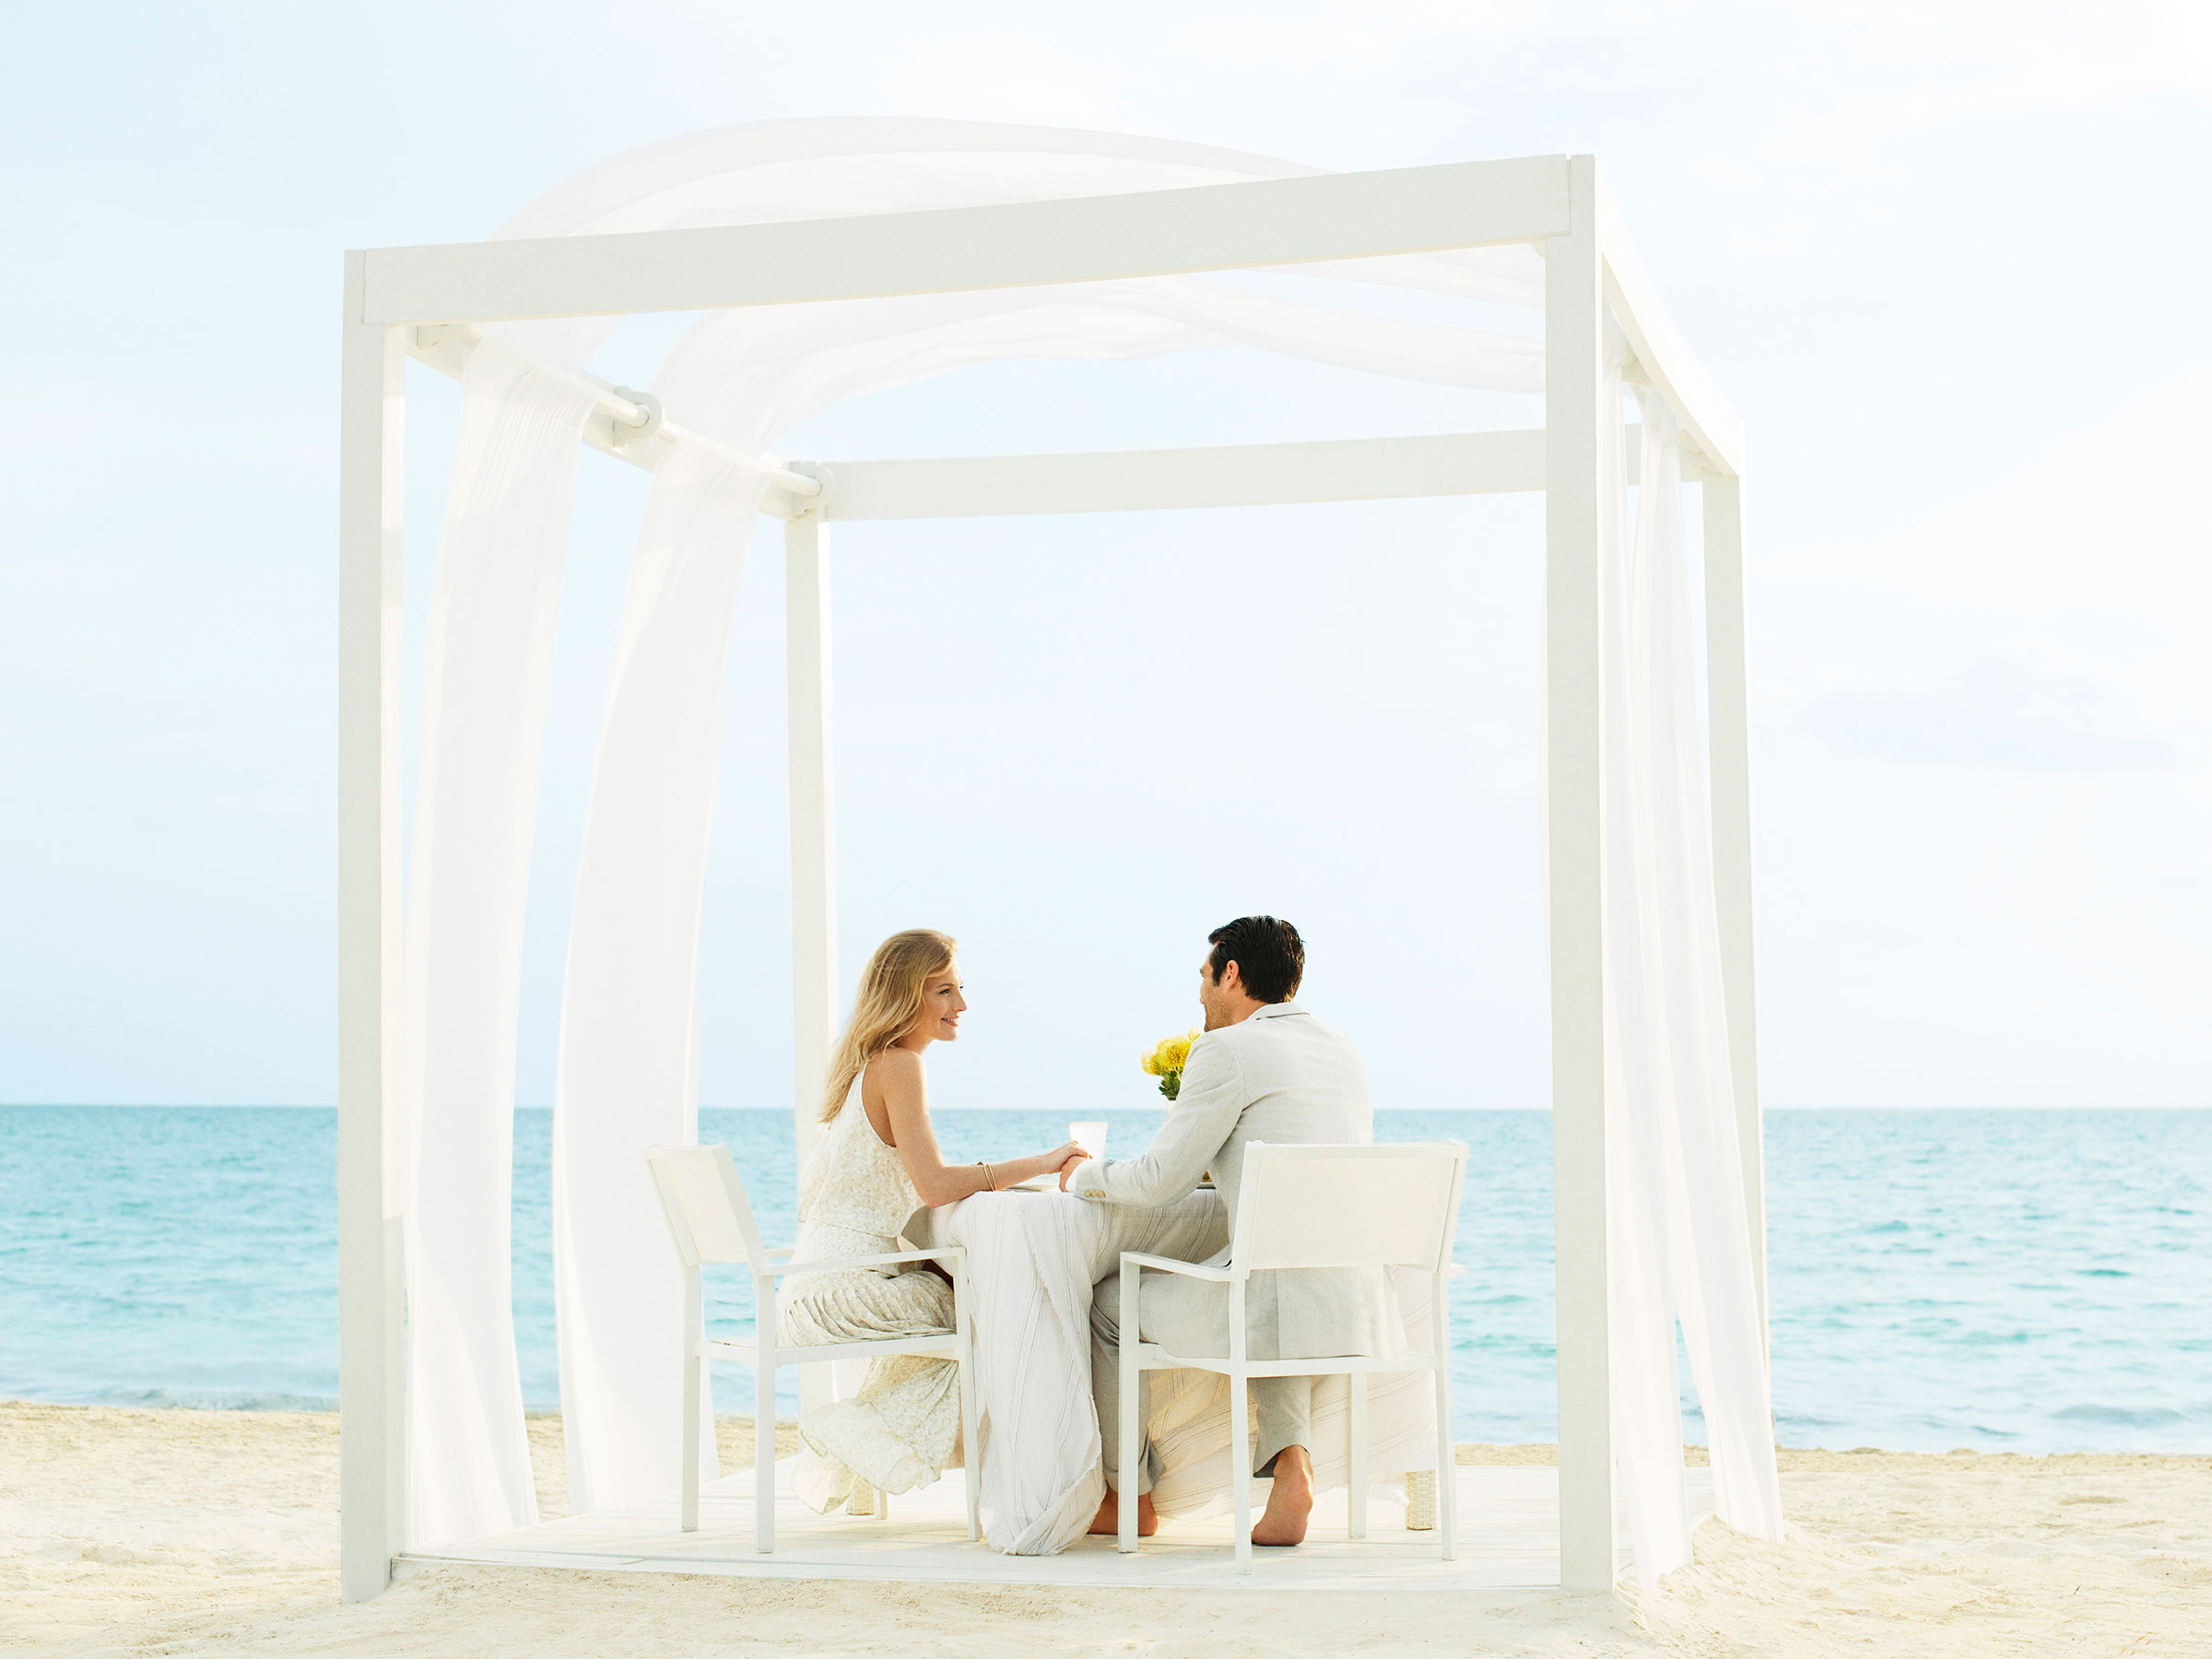 Romantic Vacations for Couples in Cancun